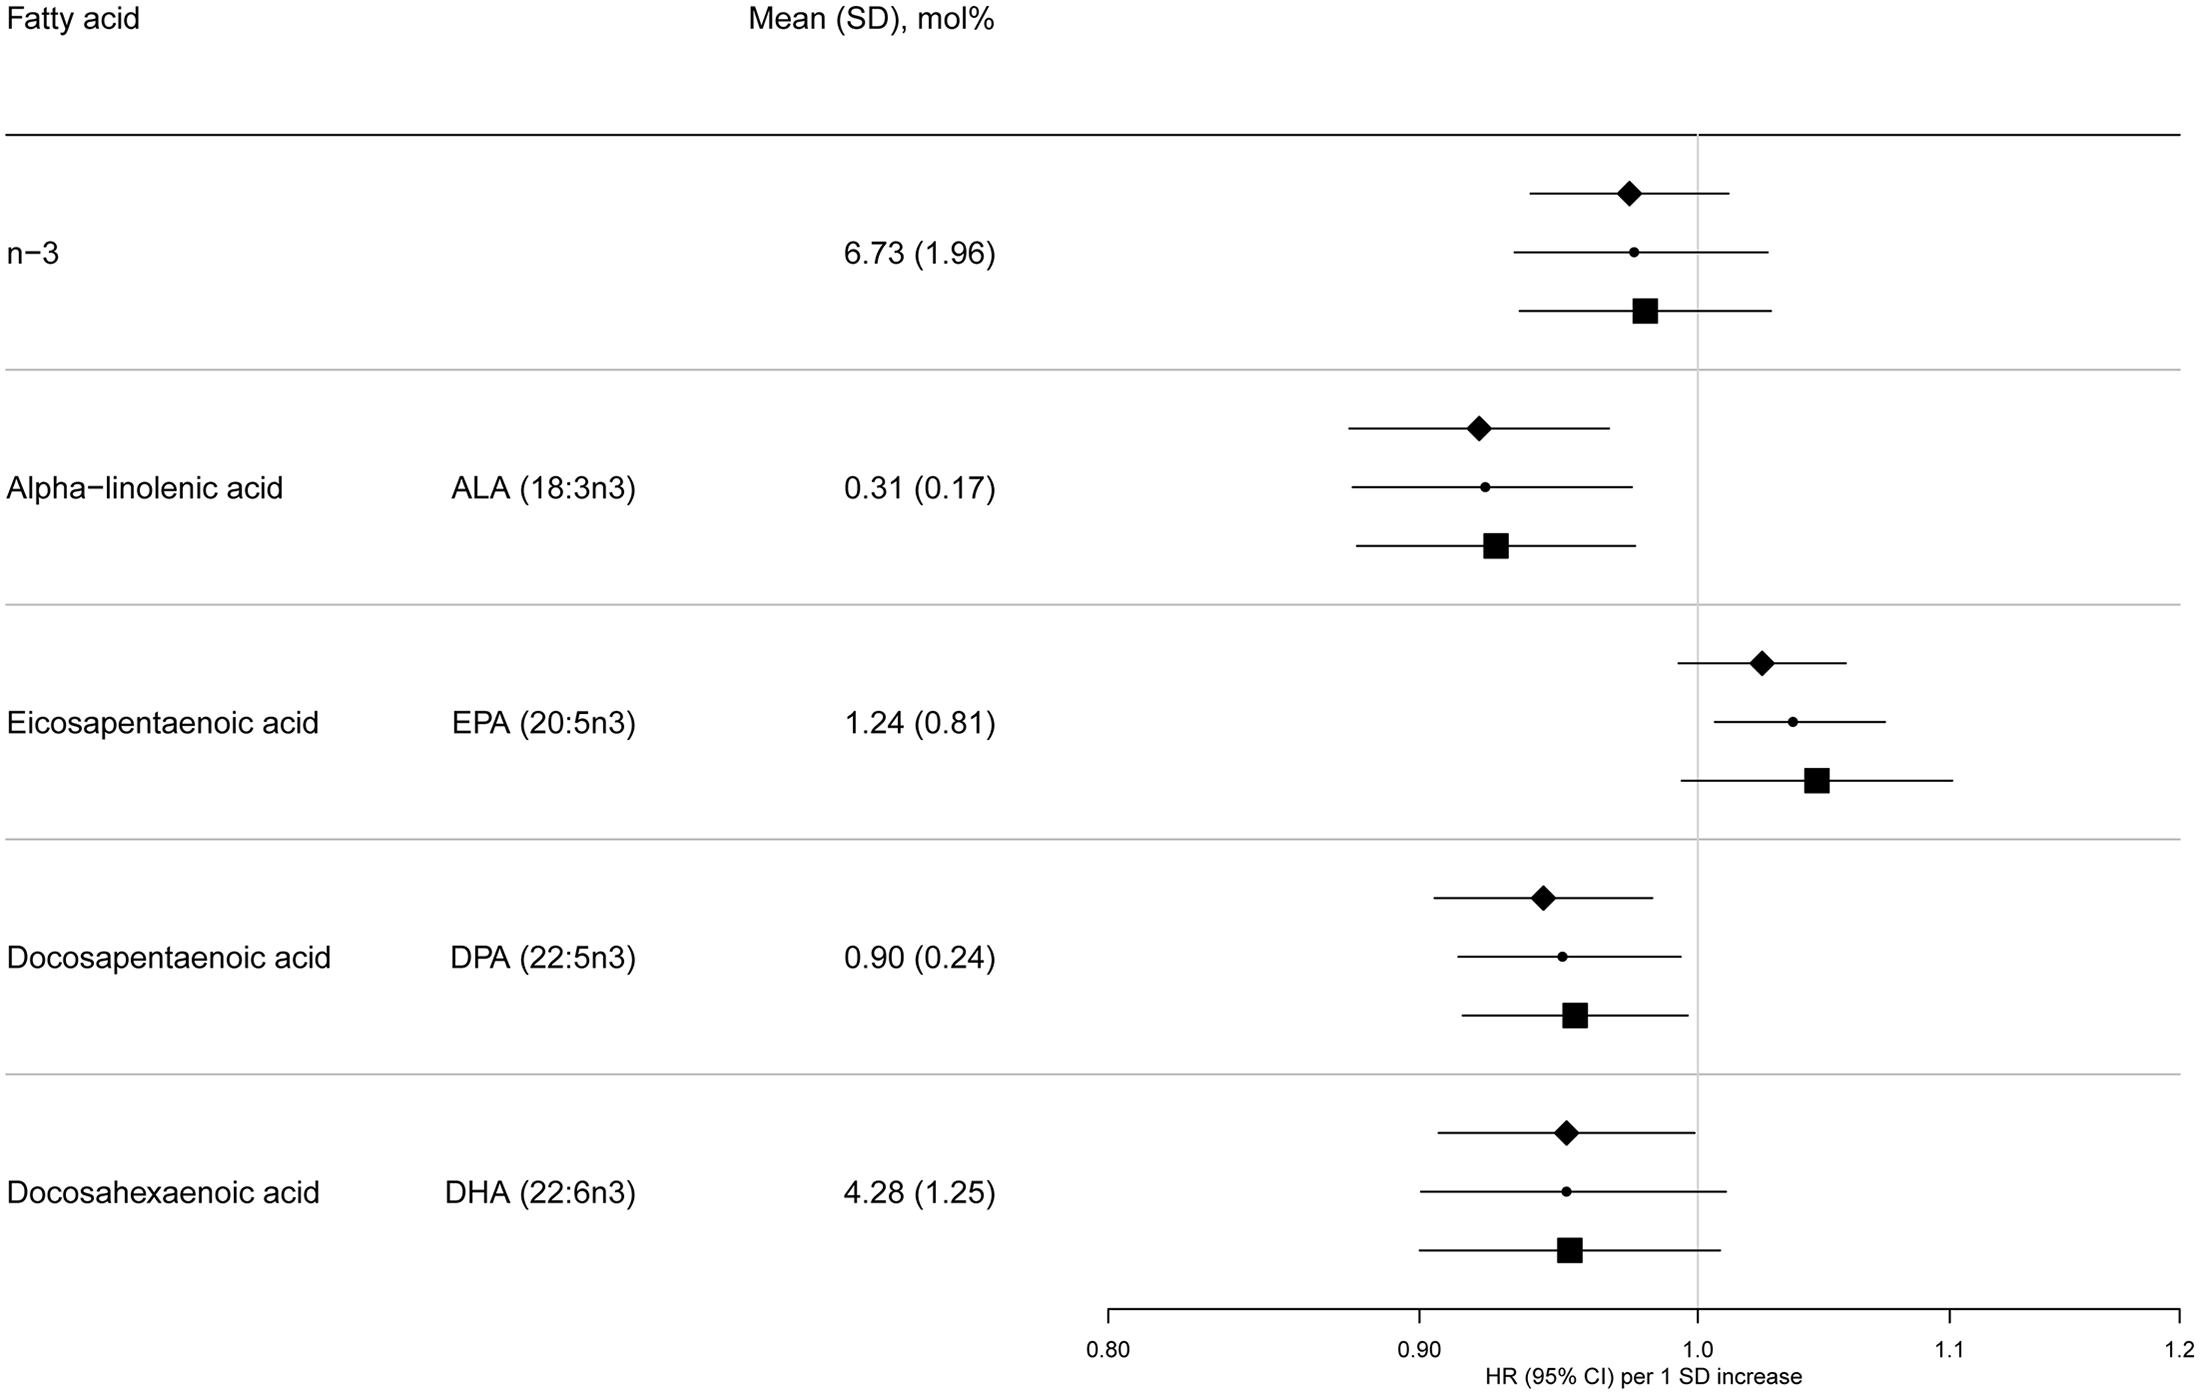 HRs of T2D and 95% CIs per 1 SD increase in total and individual n-3 PUFAs (ALA, EPA, DPA, and DHA): EPIC-InterAct study.